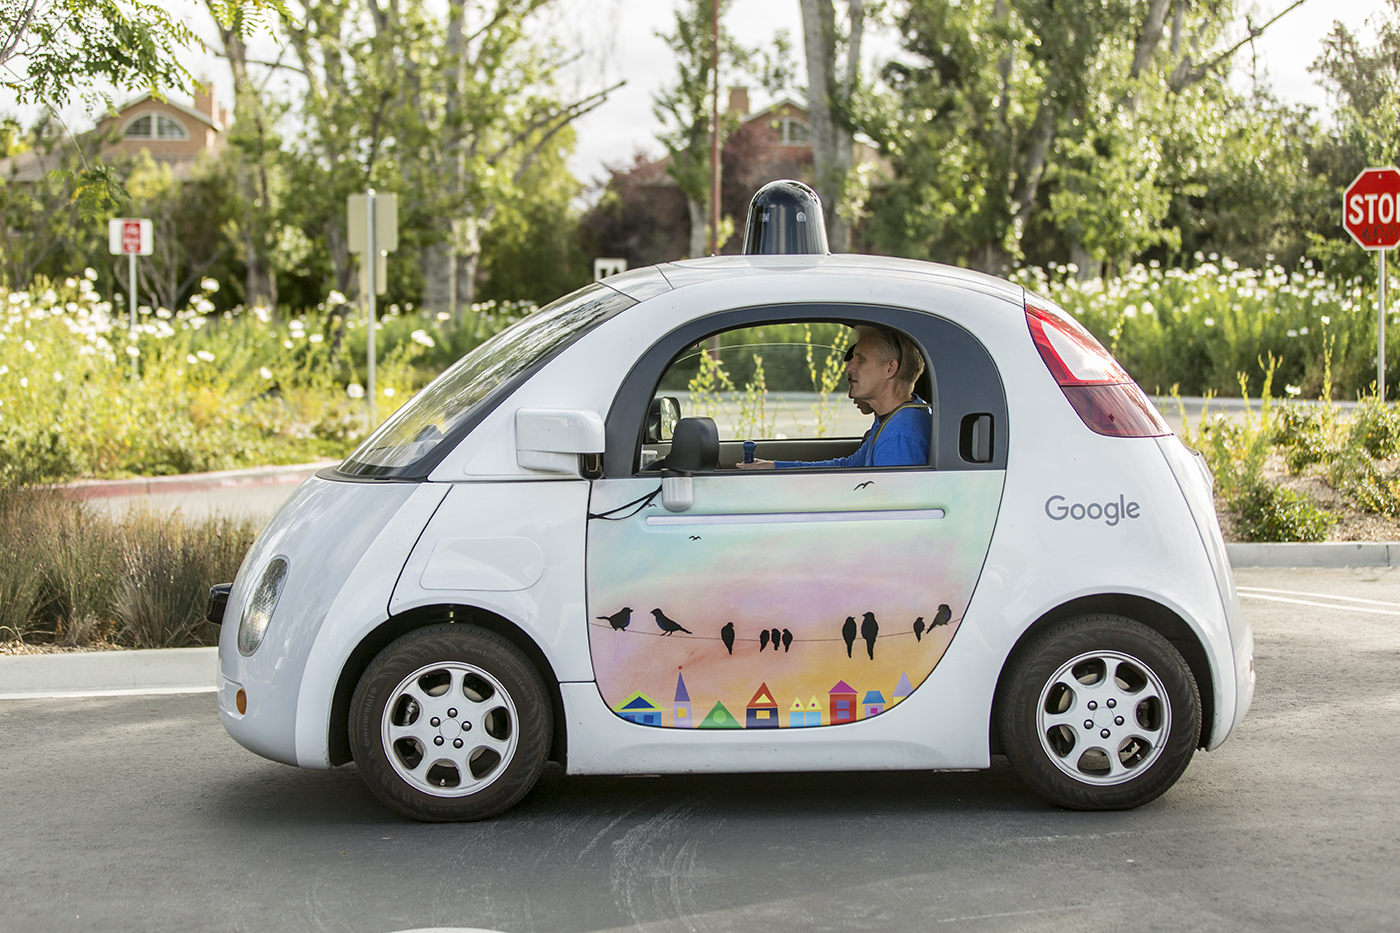 cool looking driverless Google car from UCL website